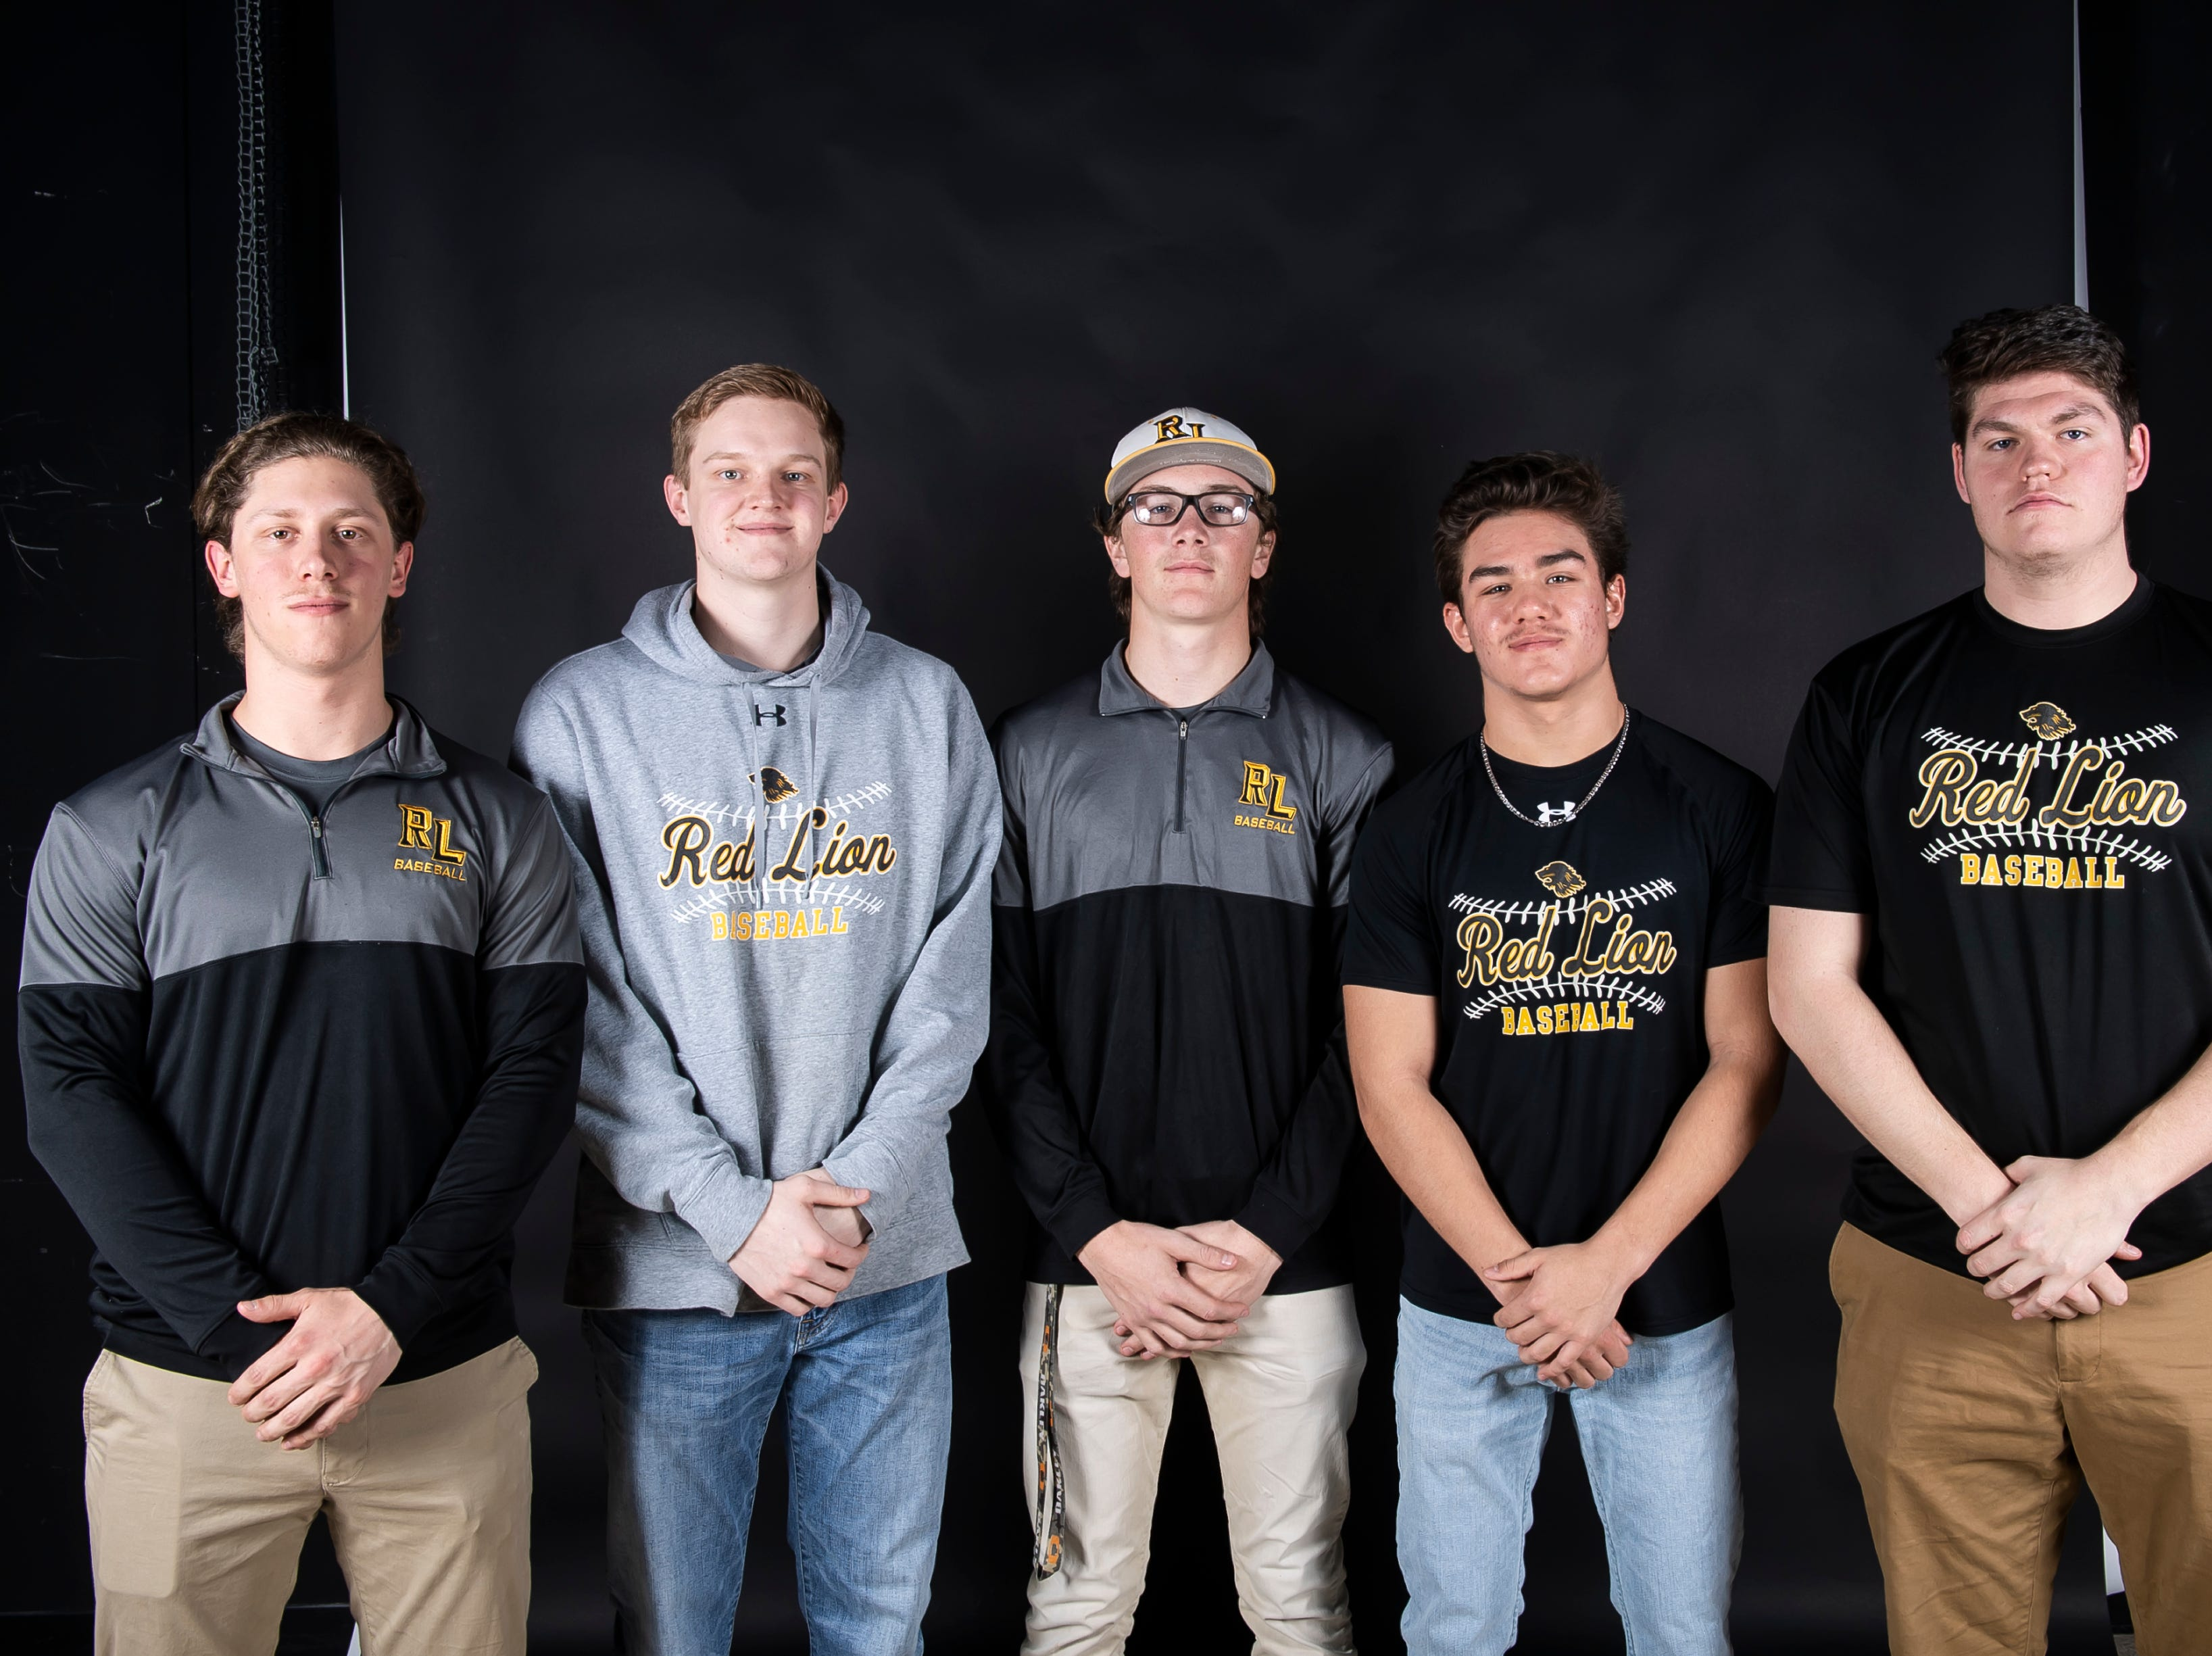 (From left) Red Lion baseball players C.J. Czerwinski, Nate Hodgkinson, Channing Bratton, Cole Daugherty and Sean Glatfelter pose in the GameTimePA photo booth during spring sports media day in York Sunday, March 10, 2019.